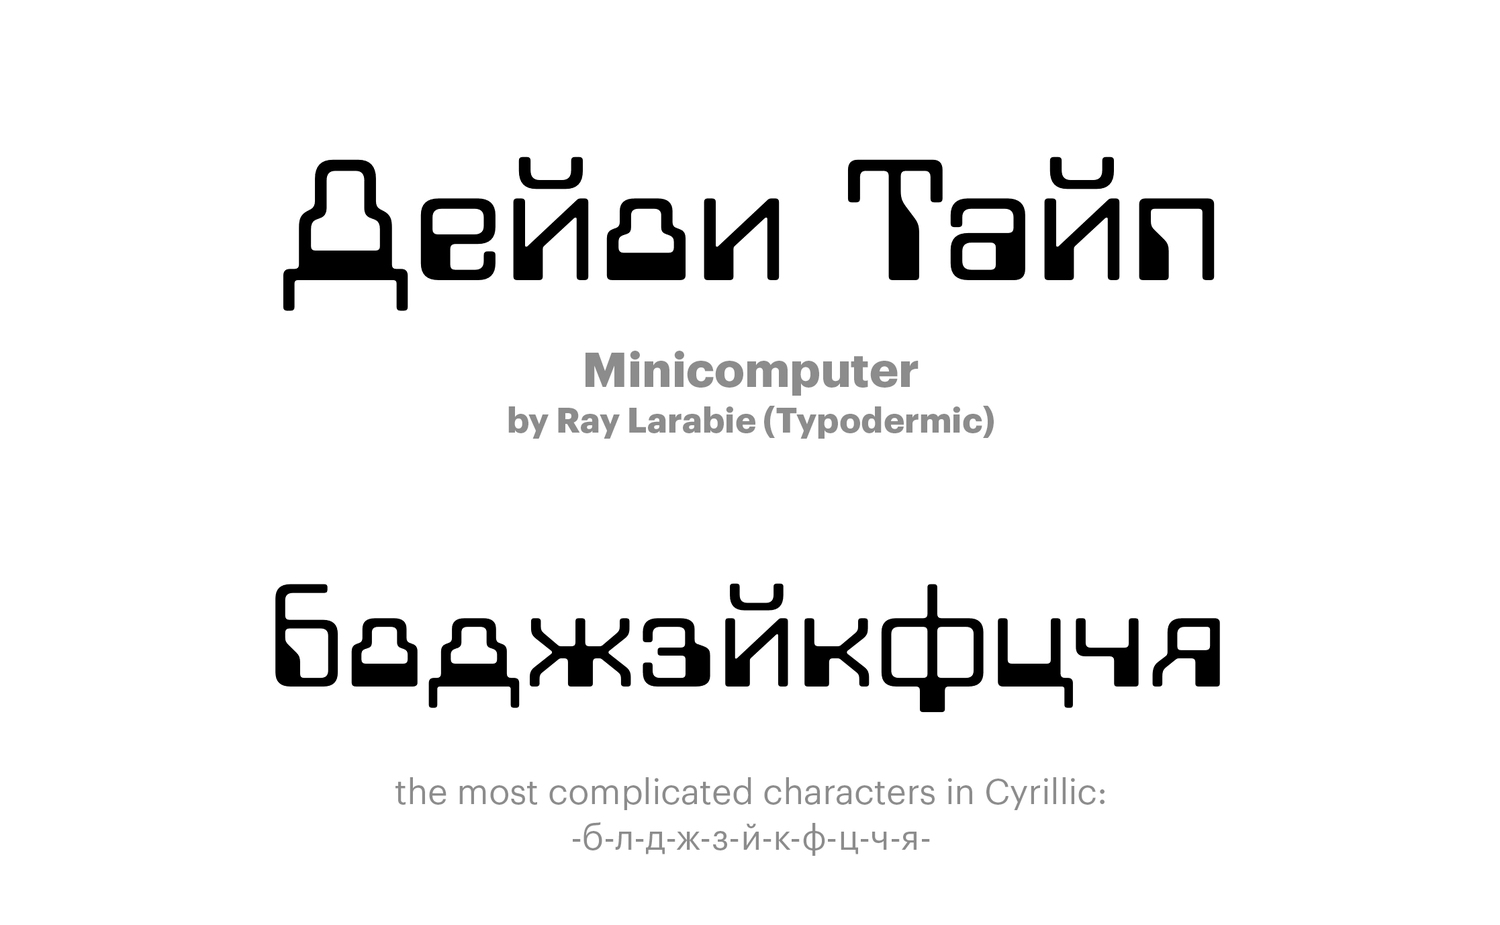 Minicomputer-by-Ray-Larabie-(Typodermic)